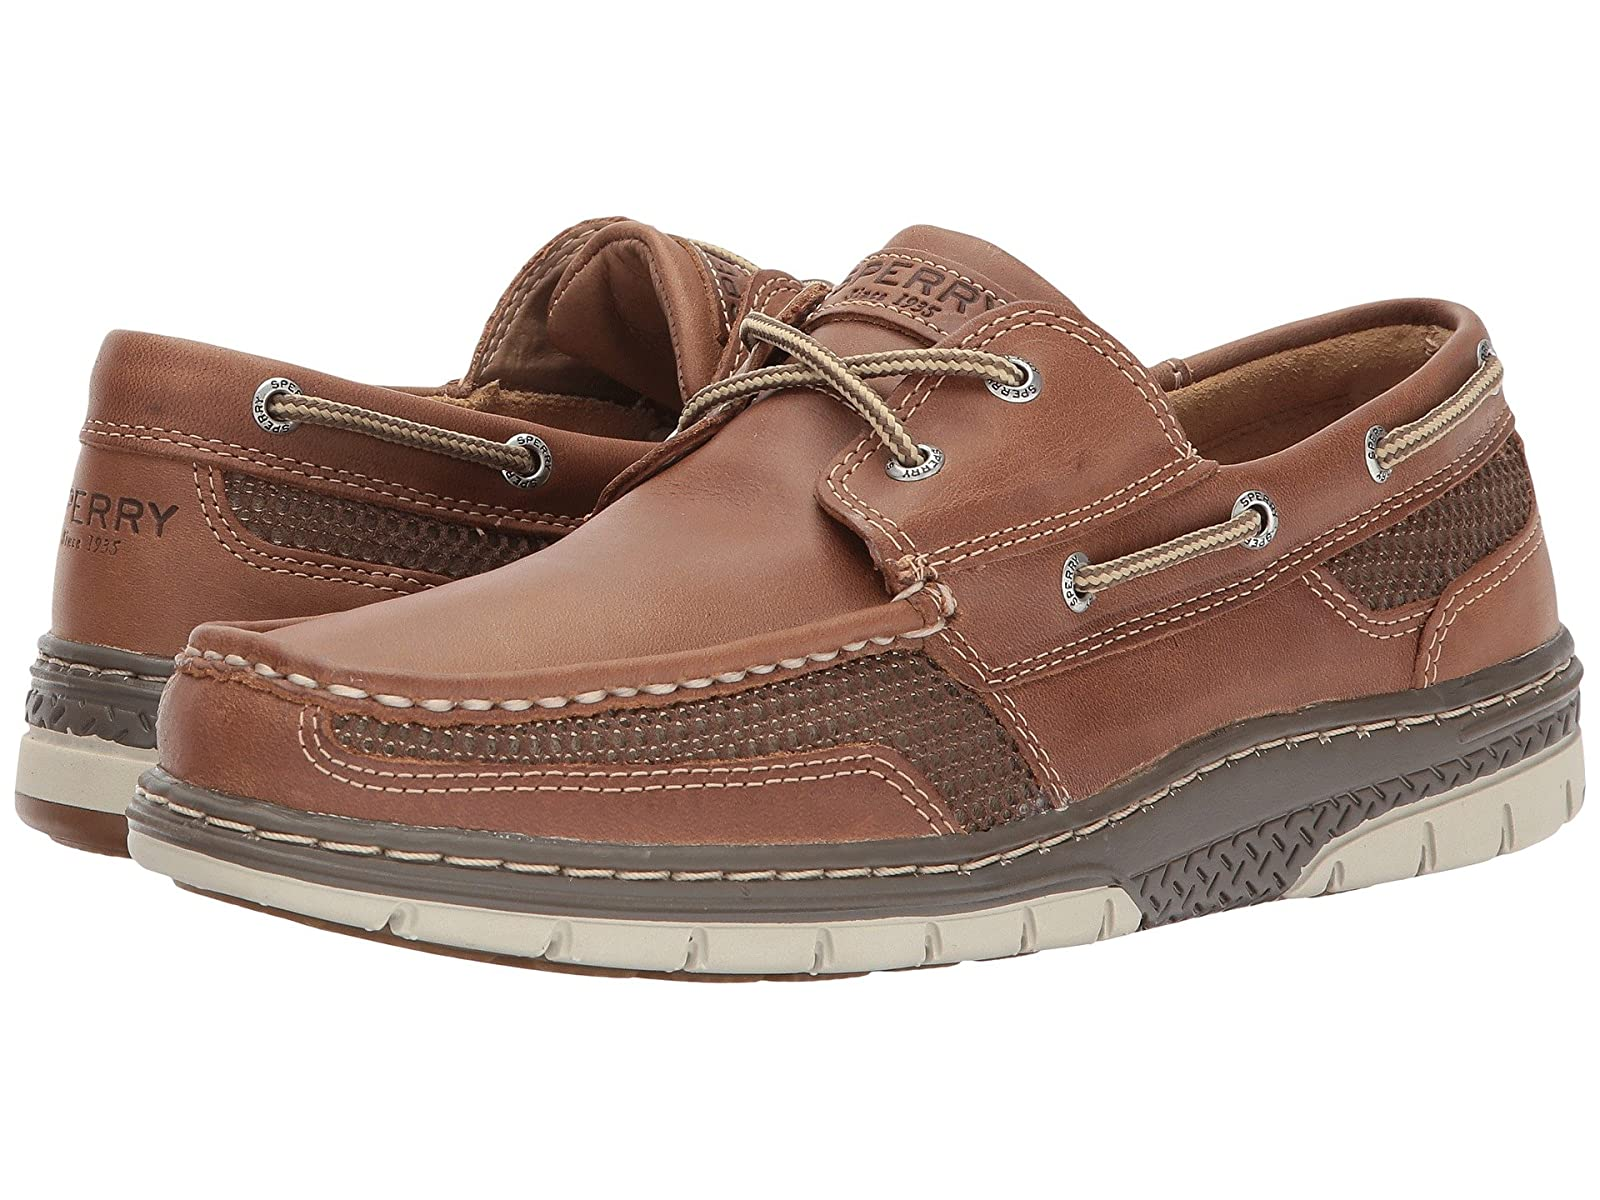 Sperry Tarpon Ultralite 2-EyeCheap and distinctive eye-catching shoes